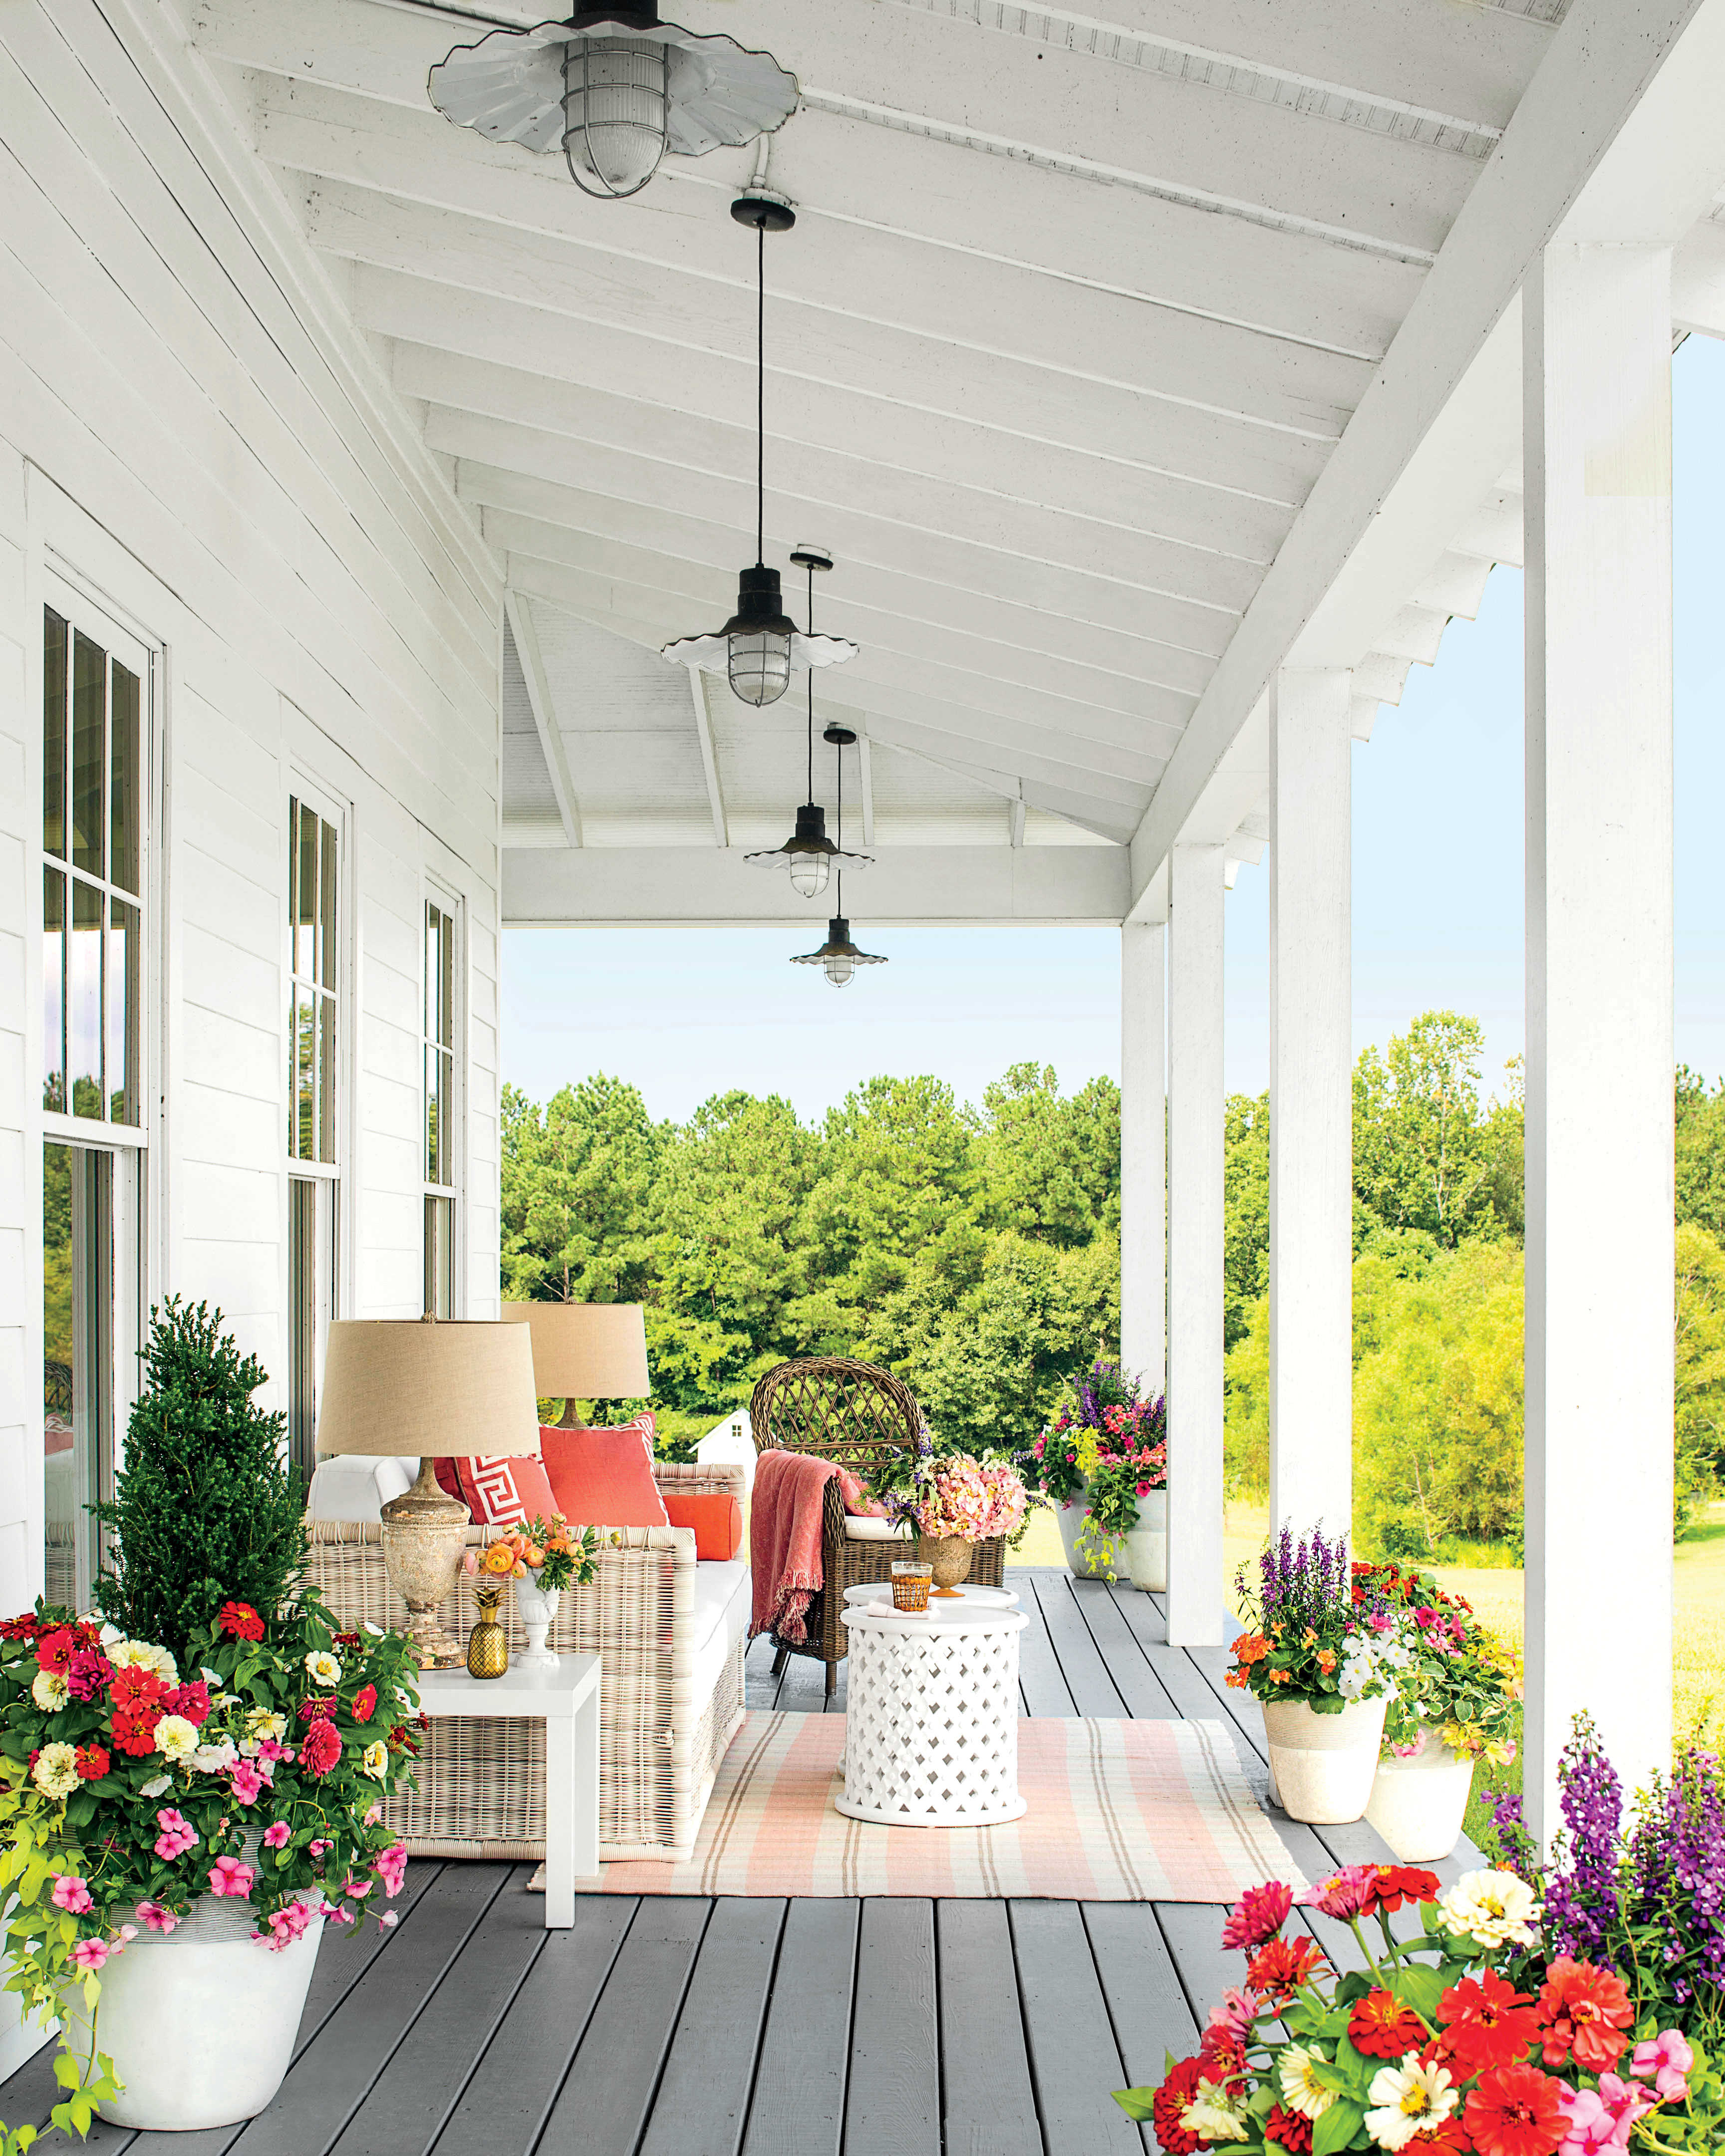 Porch And Patio Design Inspiration Southern Living - Home porch designs